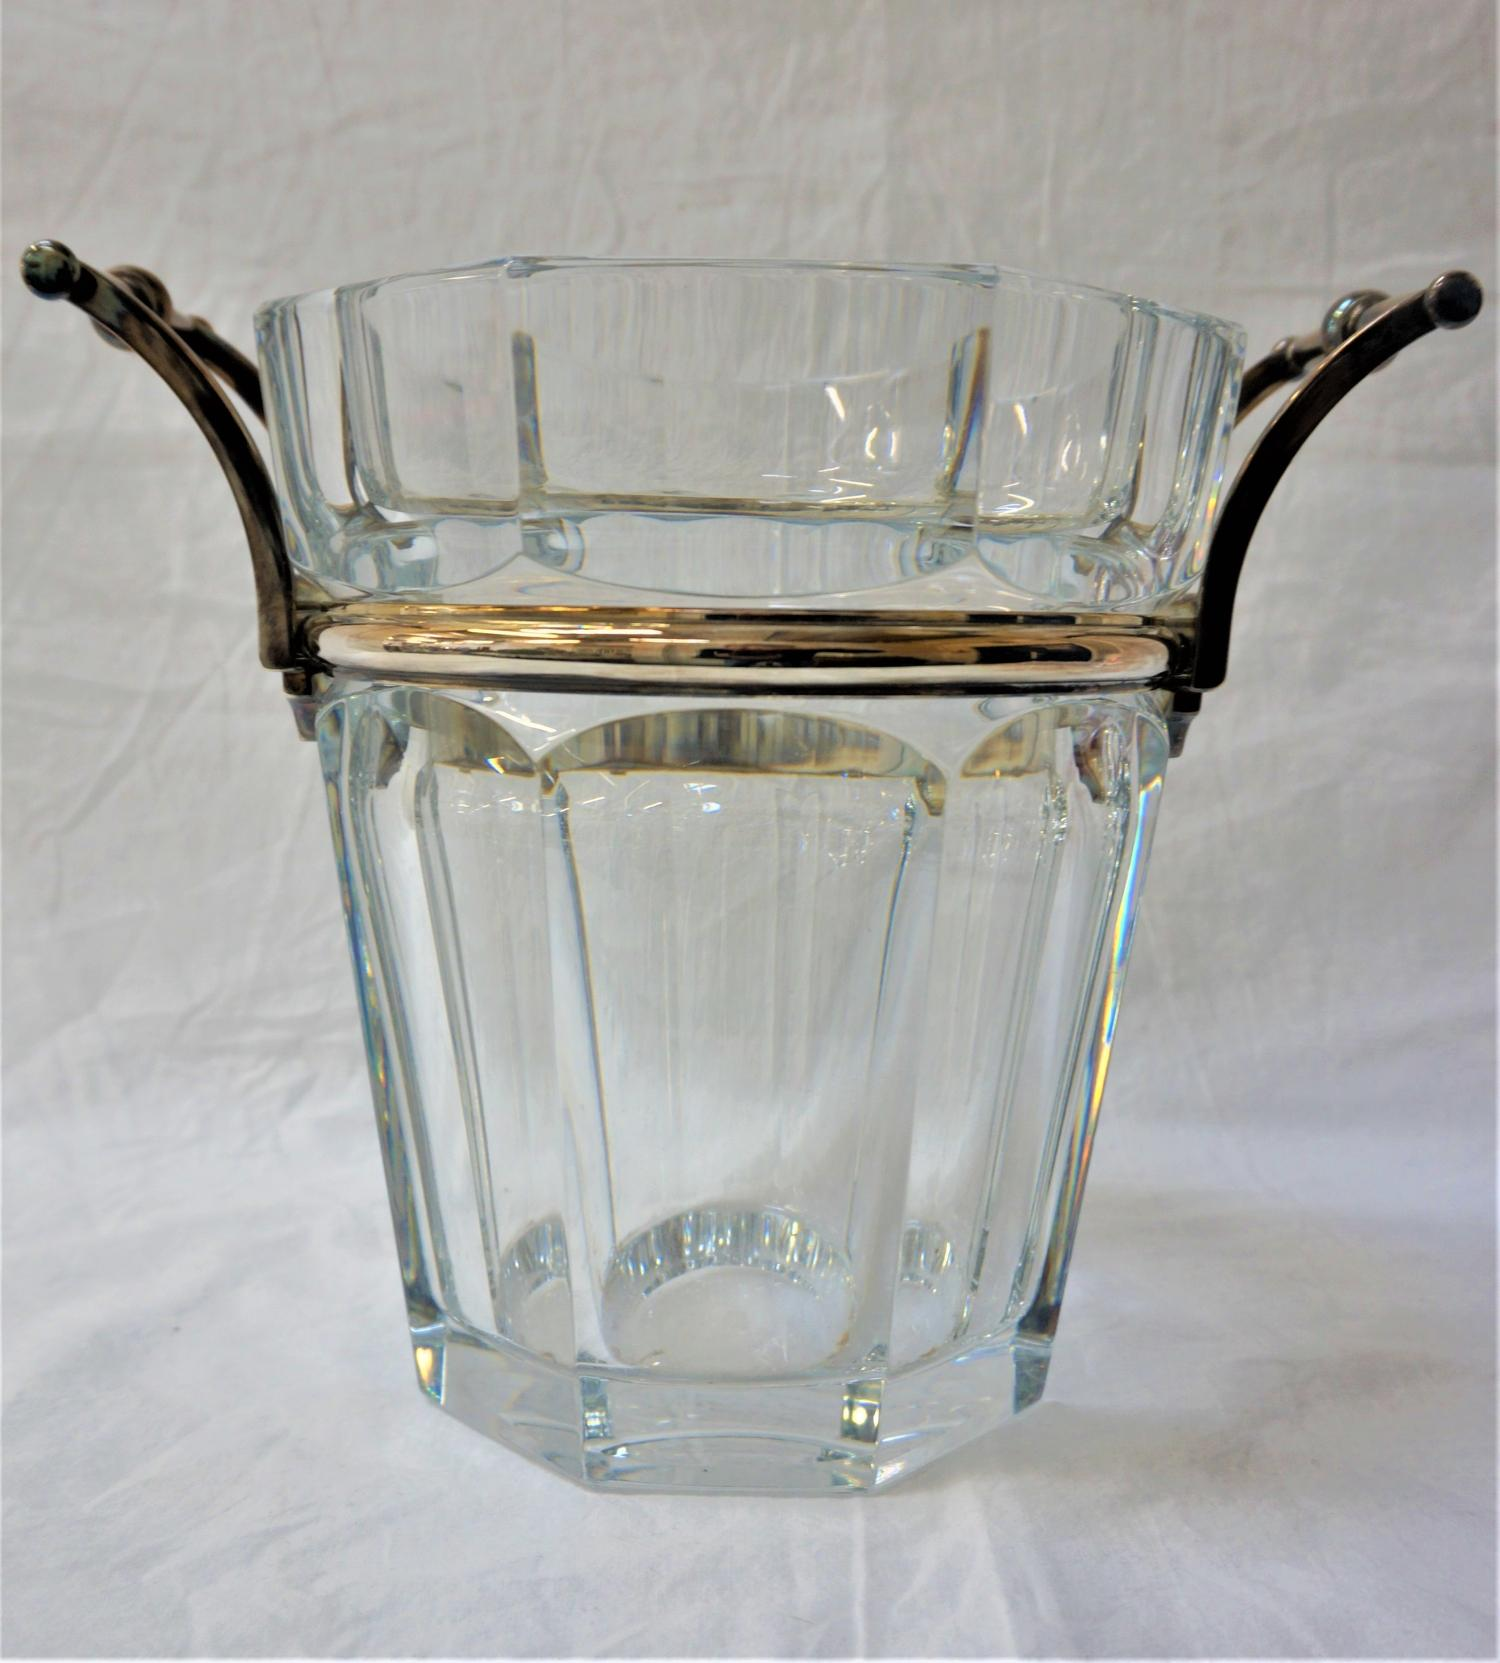 BACCARAT CRYSTAL WINE COOLER with silvered metal banding and handles, marked to the base, 23cm high